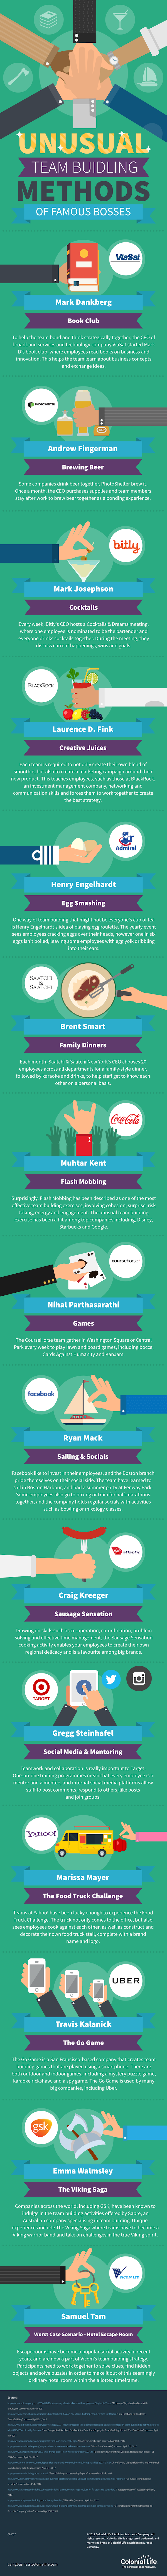 The Unusual Team Building Methods of Famous Bosses - #infographic